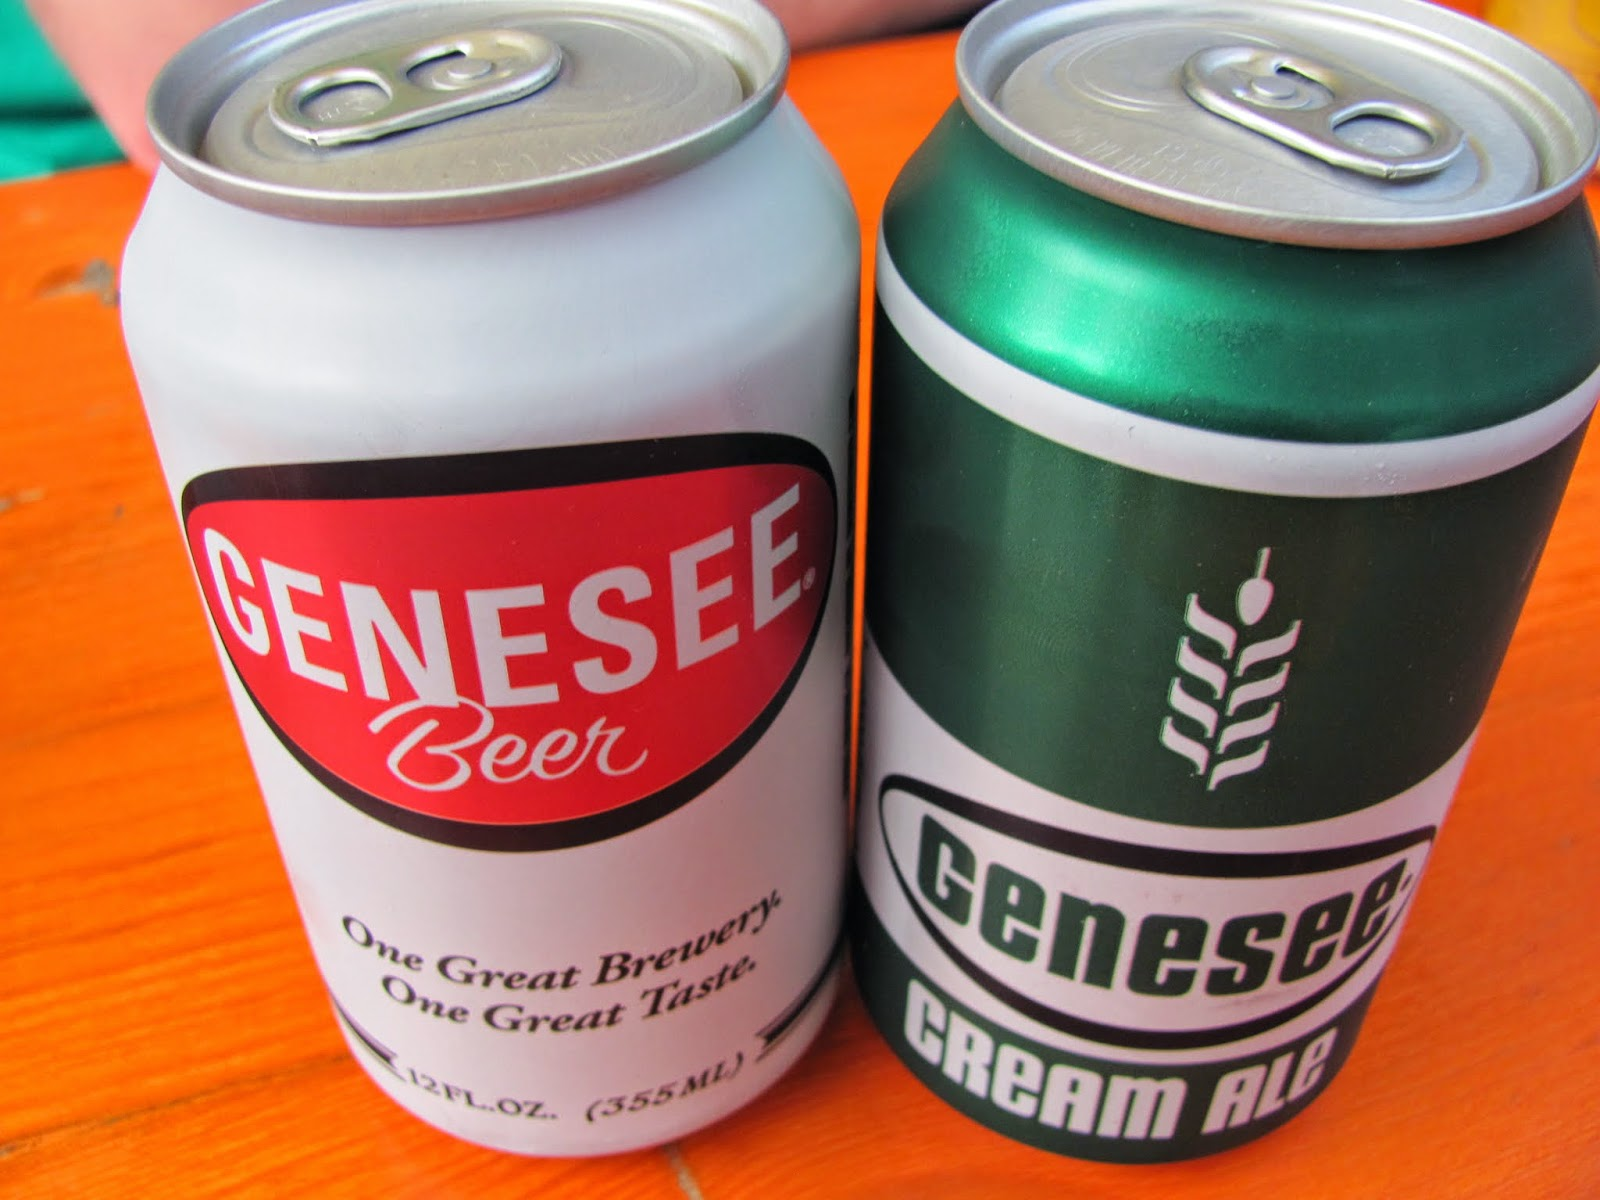 This Upstate NY Beer's Cost Matched the Branding